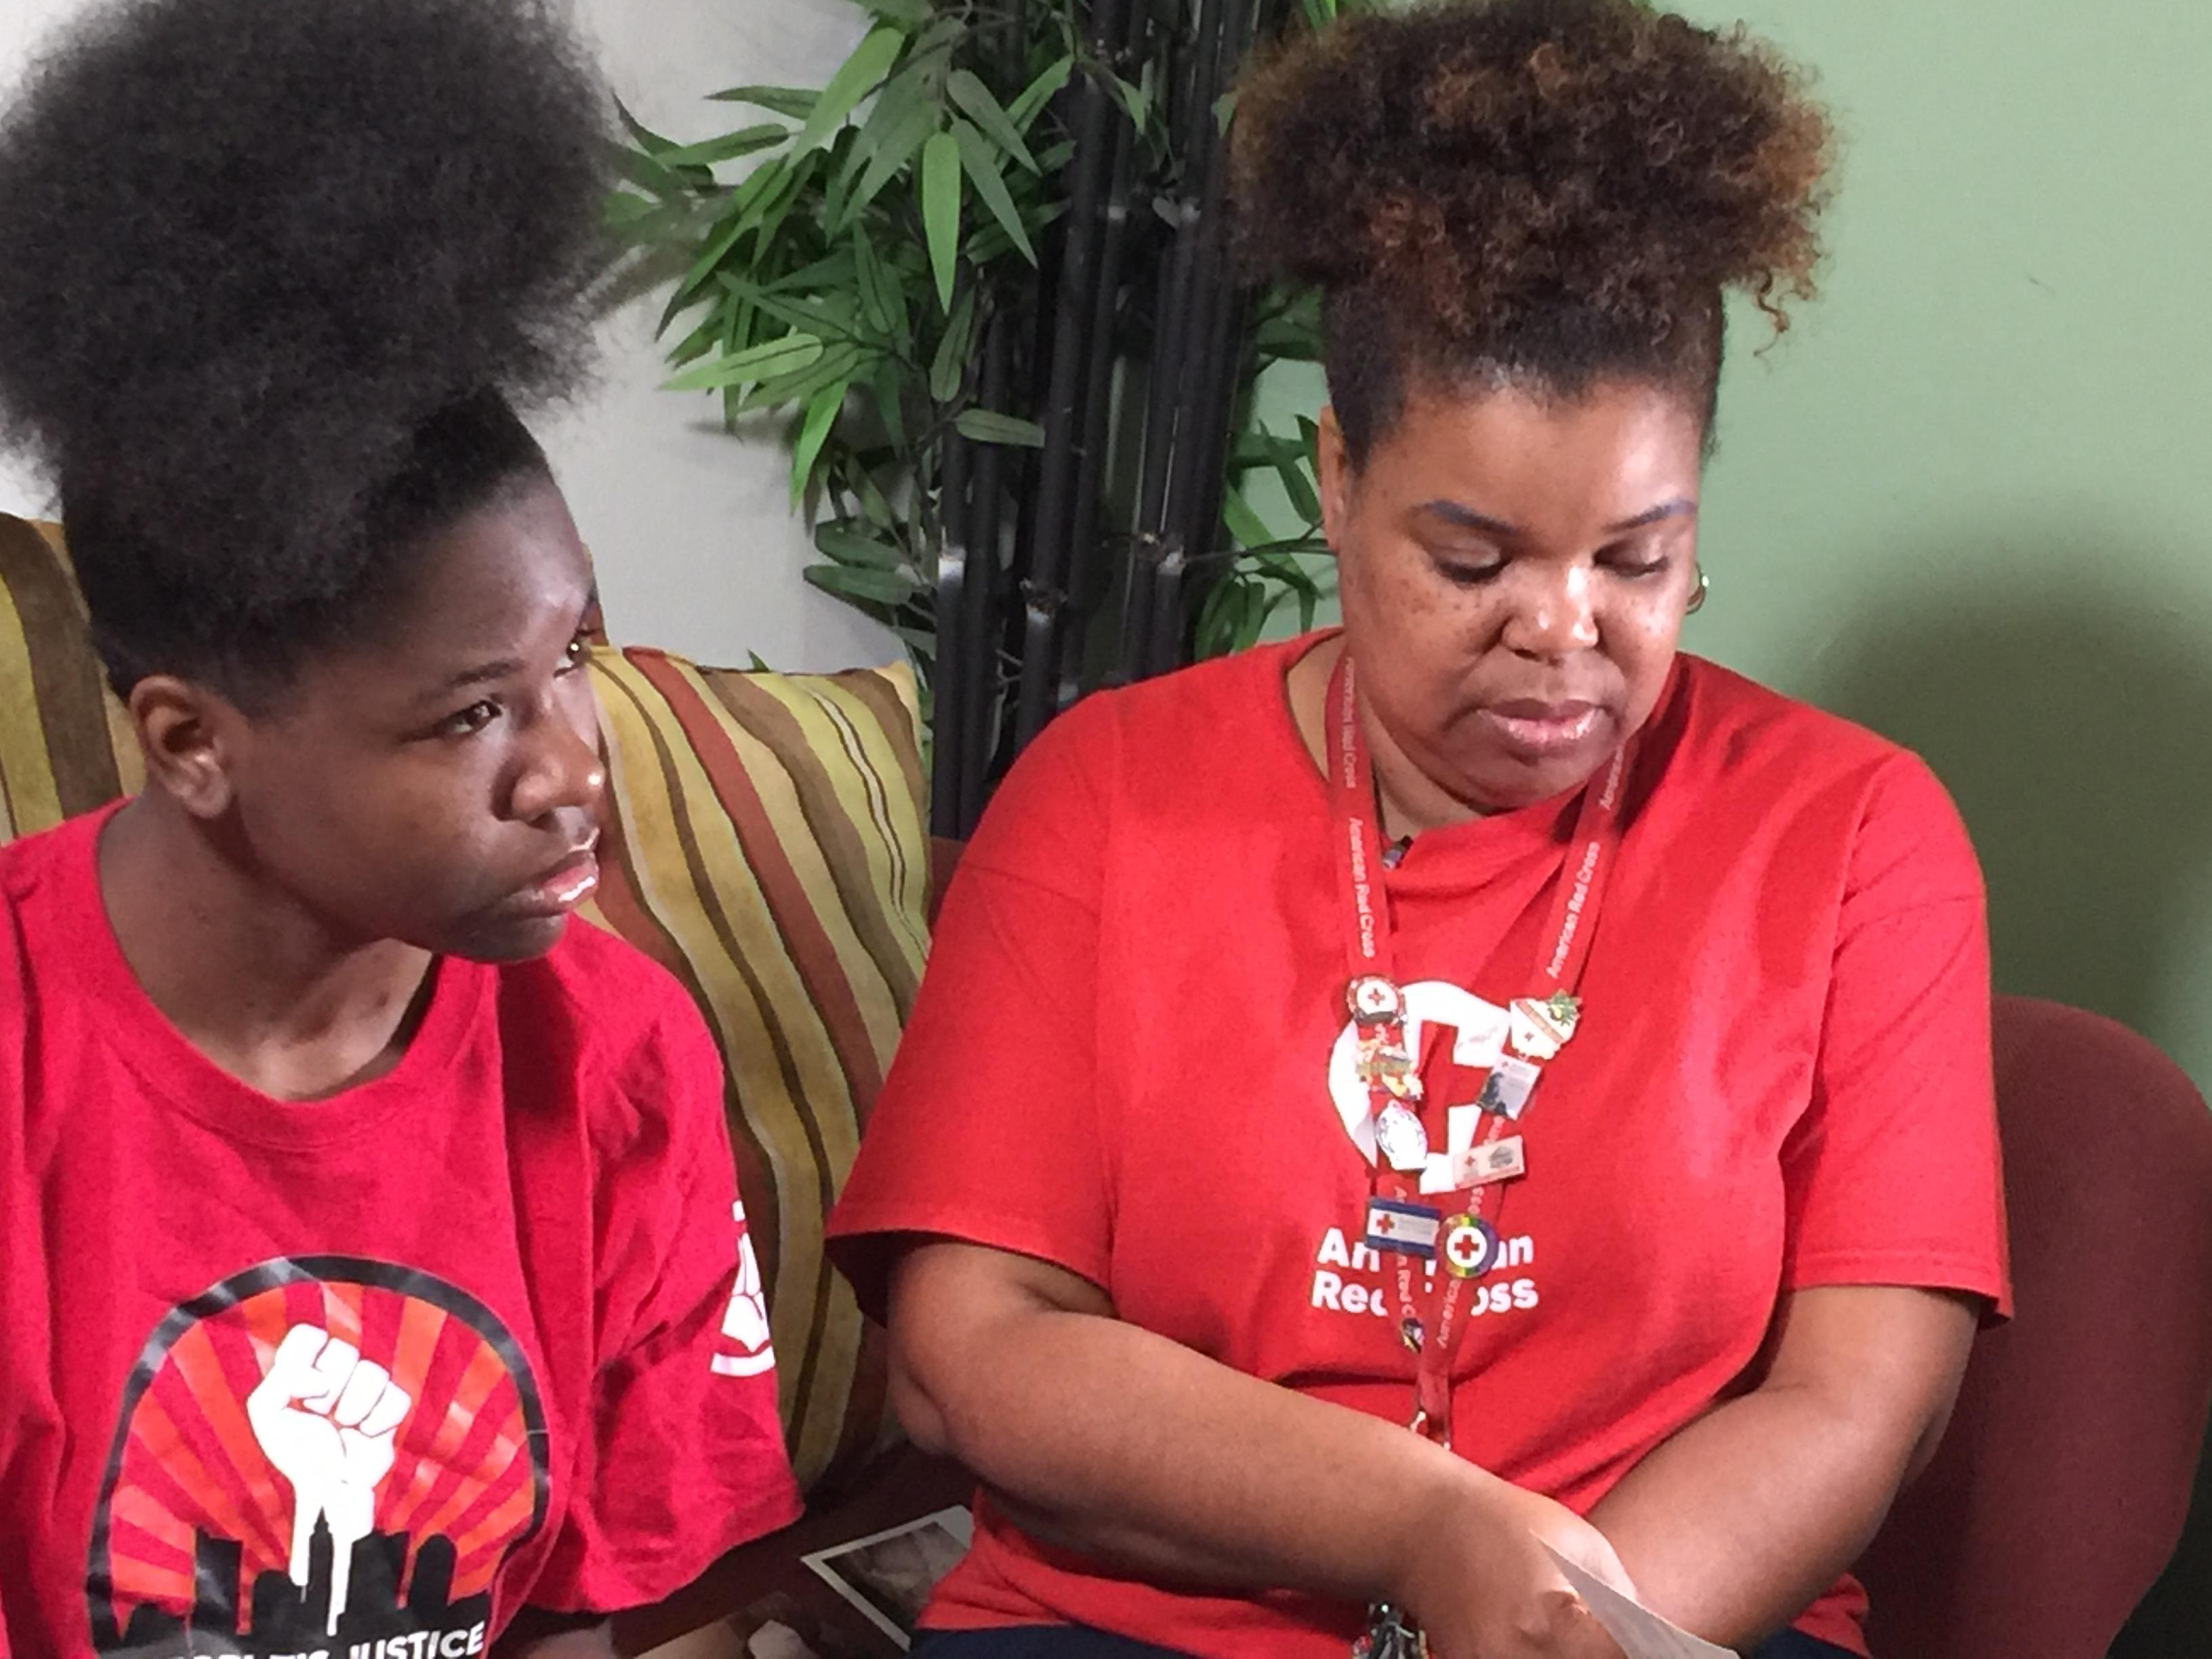 Marshall's mother was 1,000 miles away working as a Red Cross Volunteer helping victims of Hurricane Harvey when she heard of his death. (WSYX/WTTE)